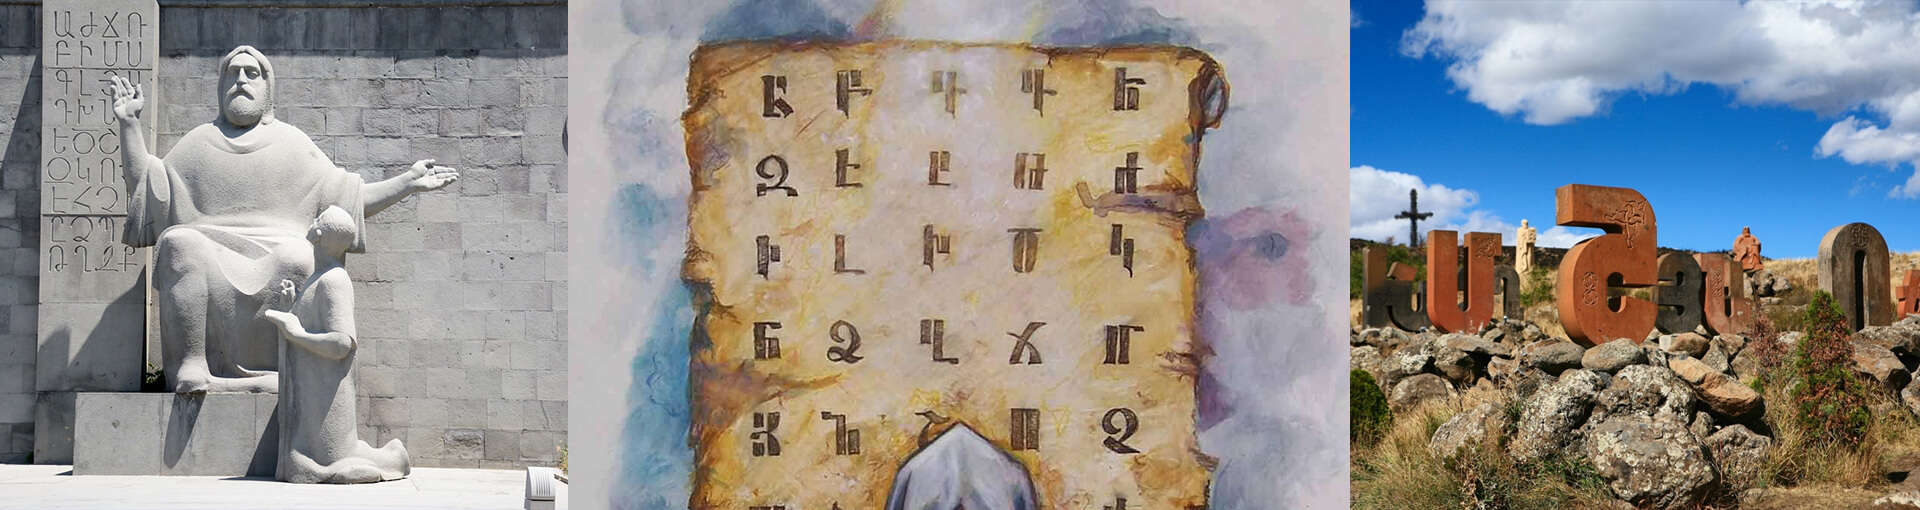 The Armenian Language